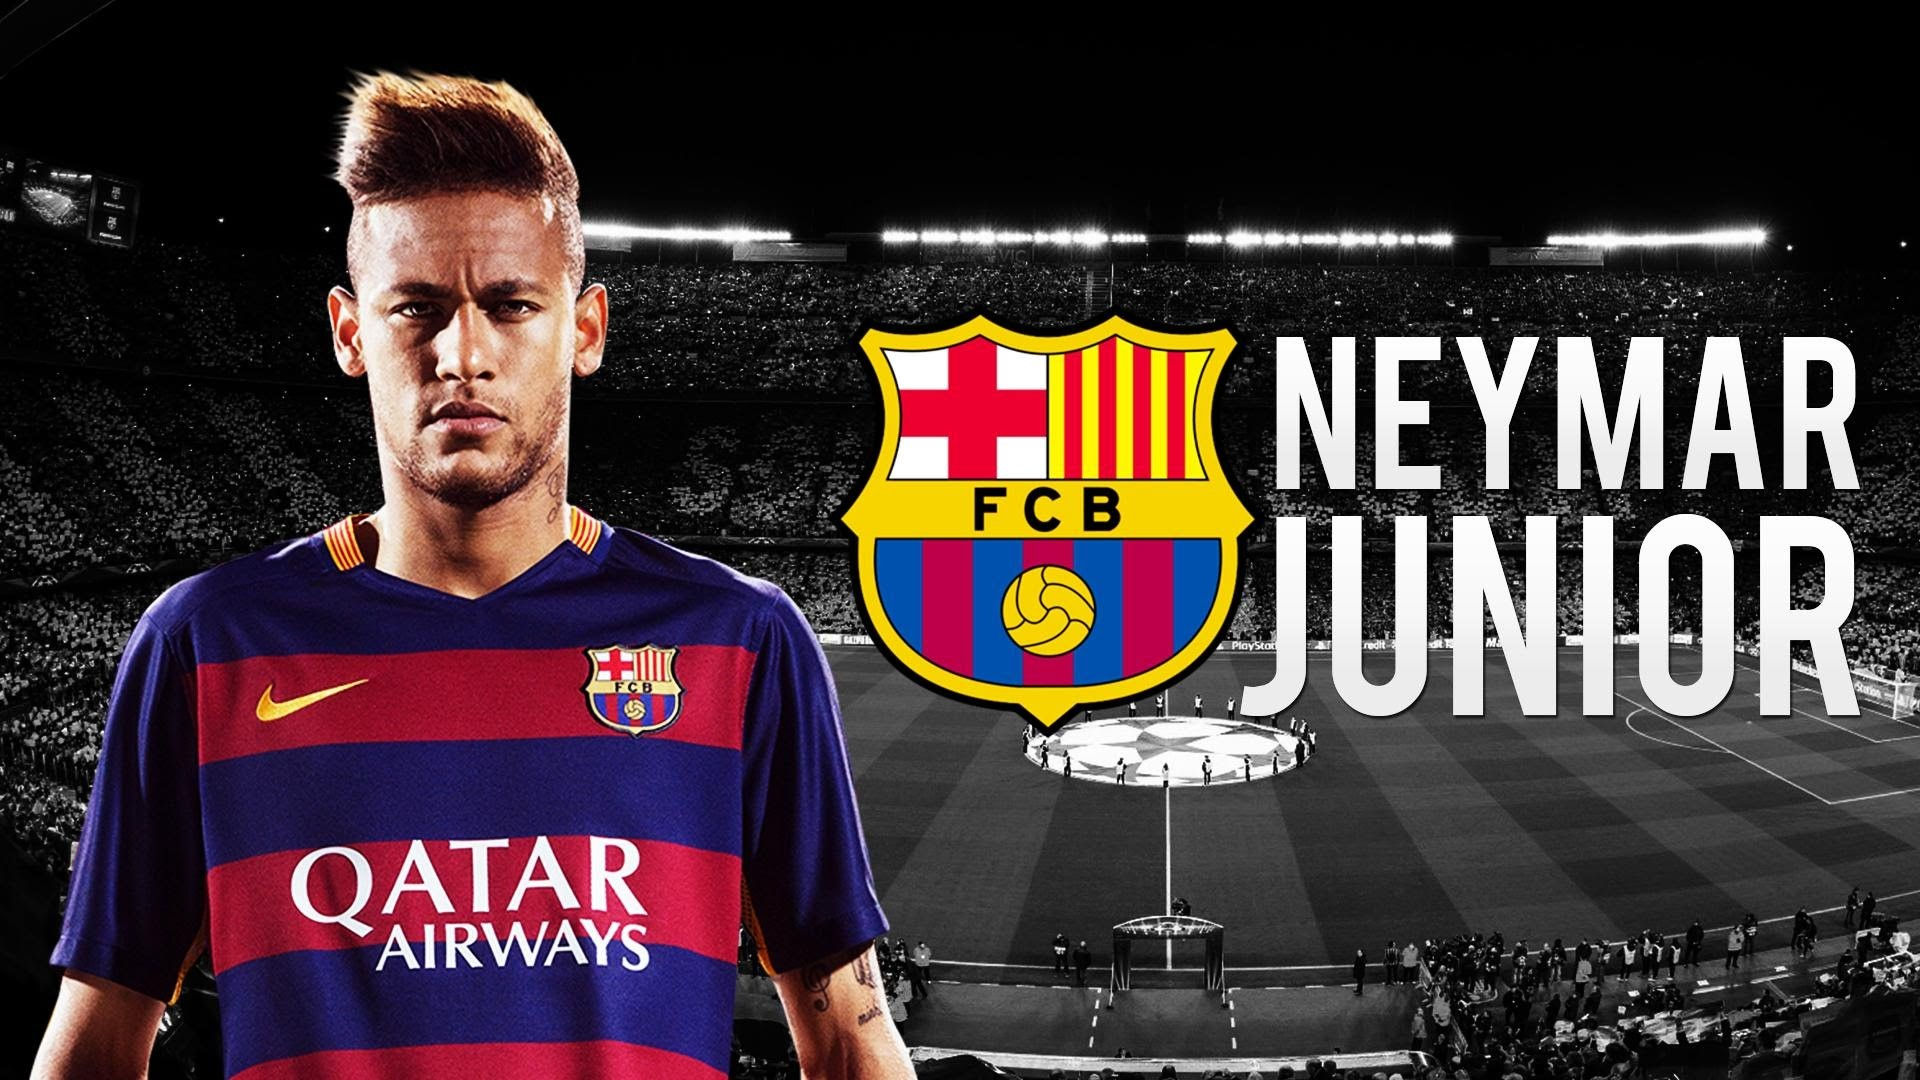 Neymar 2016 Wallpaper HD – HD Wallpapers Backgrounds of Your Choice